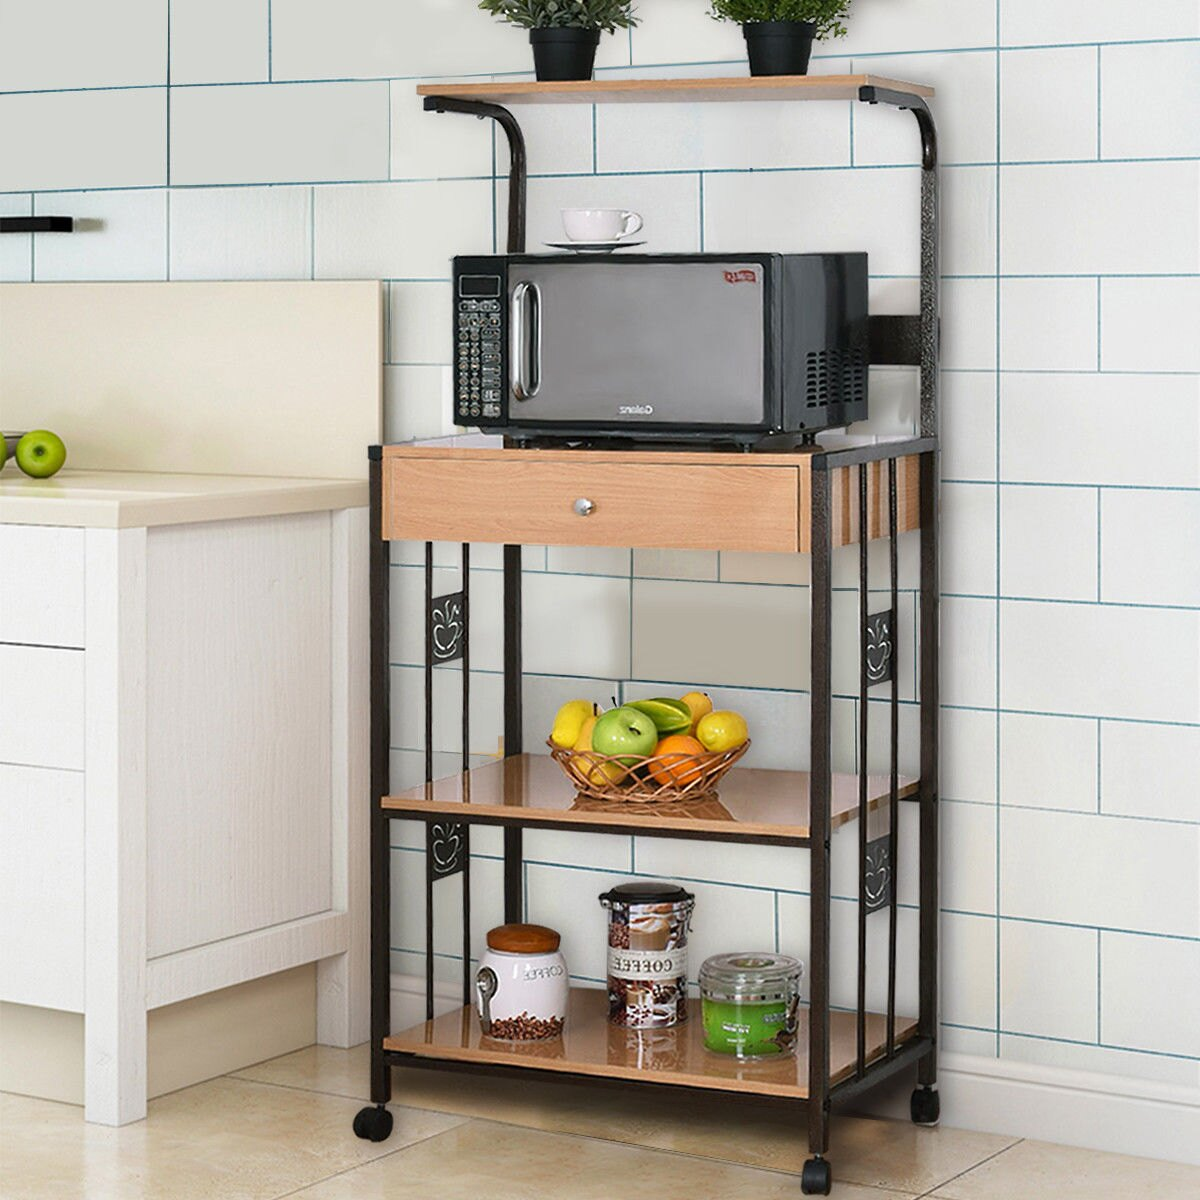 Costway 59u0027u0027 Bakers Rack Microwave Stand Rolling Kitchen Storage Cart  W/Electric Outlet